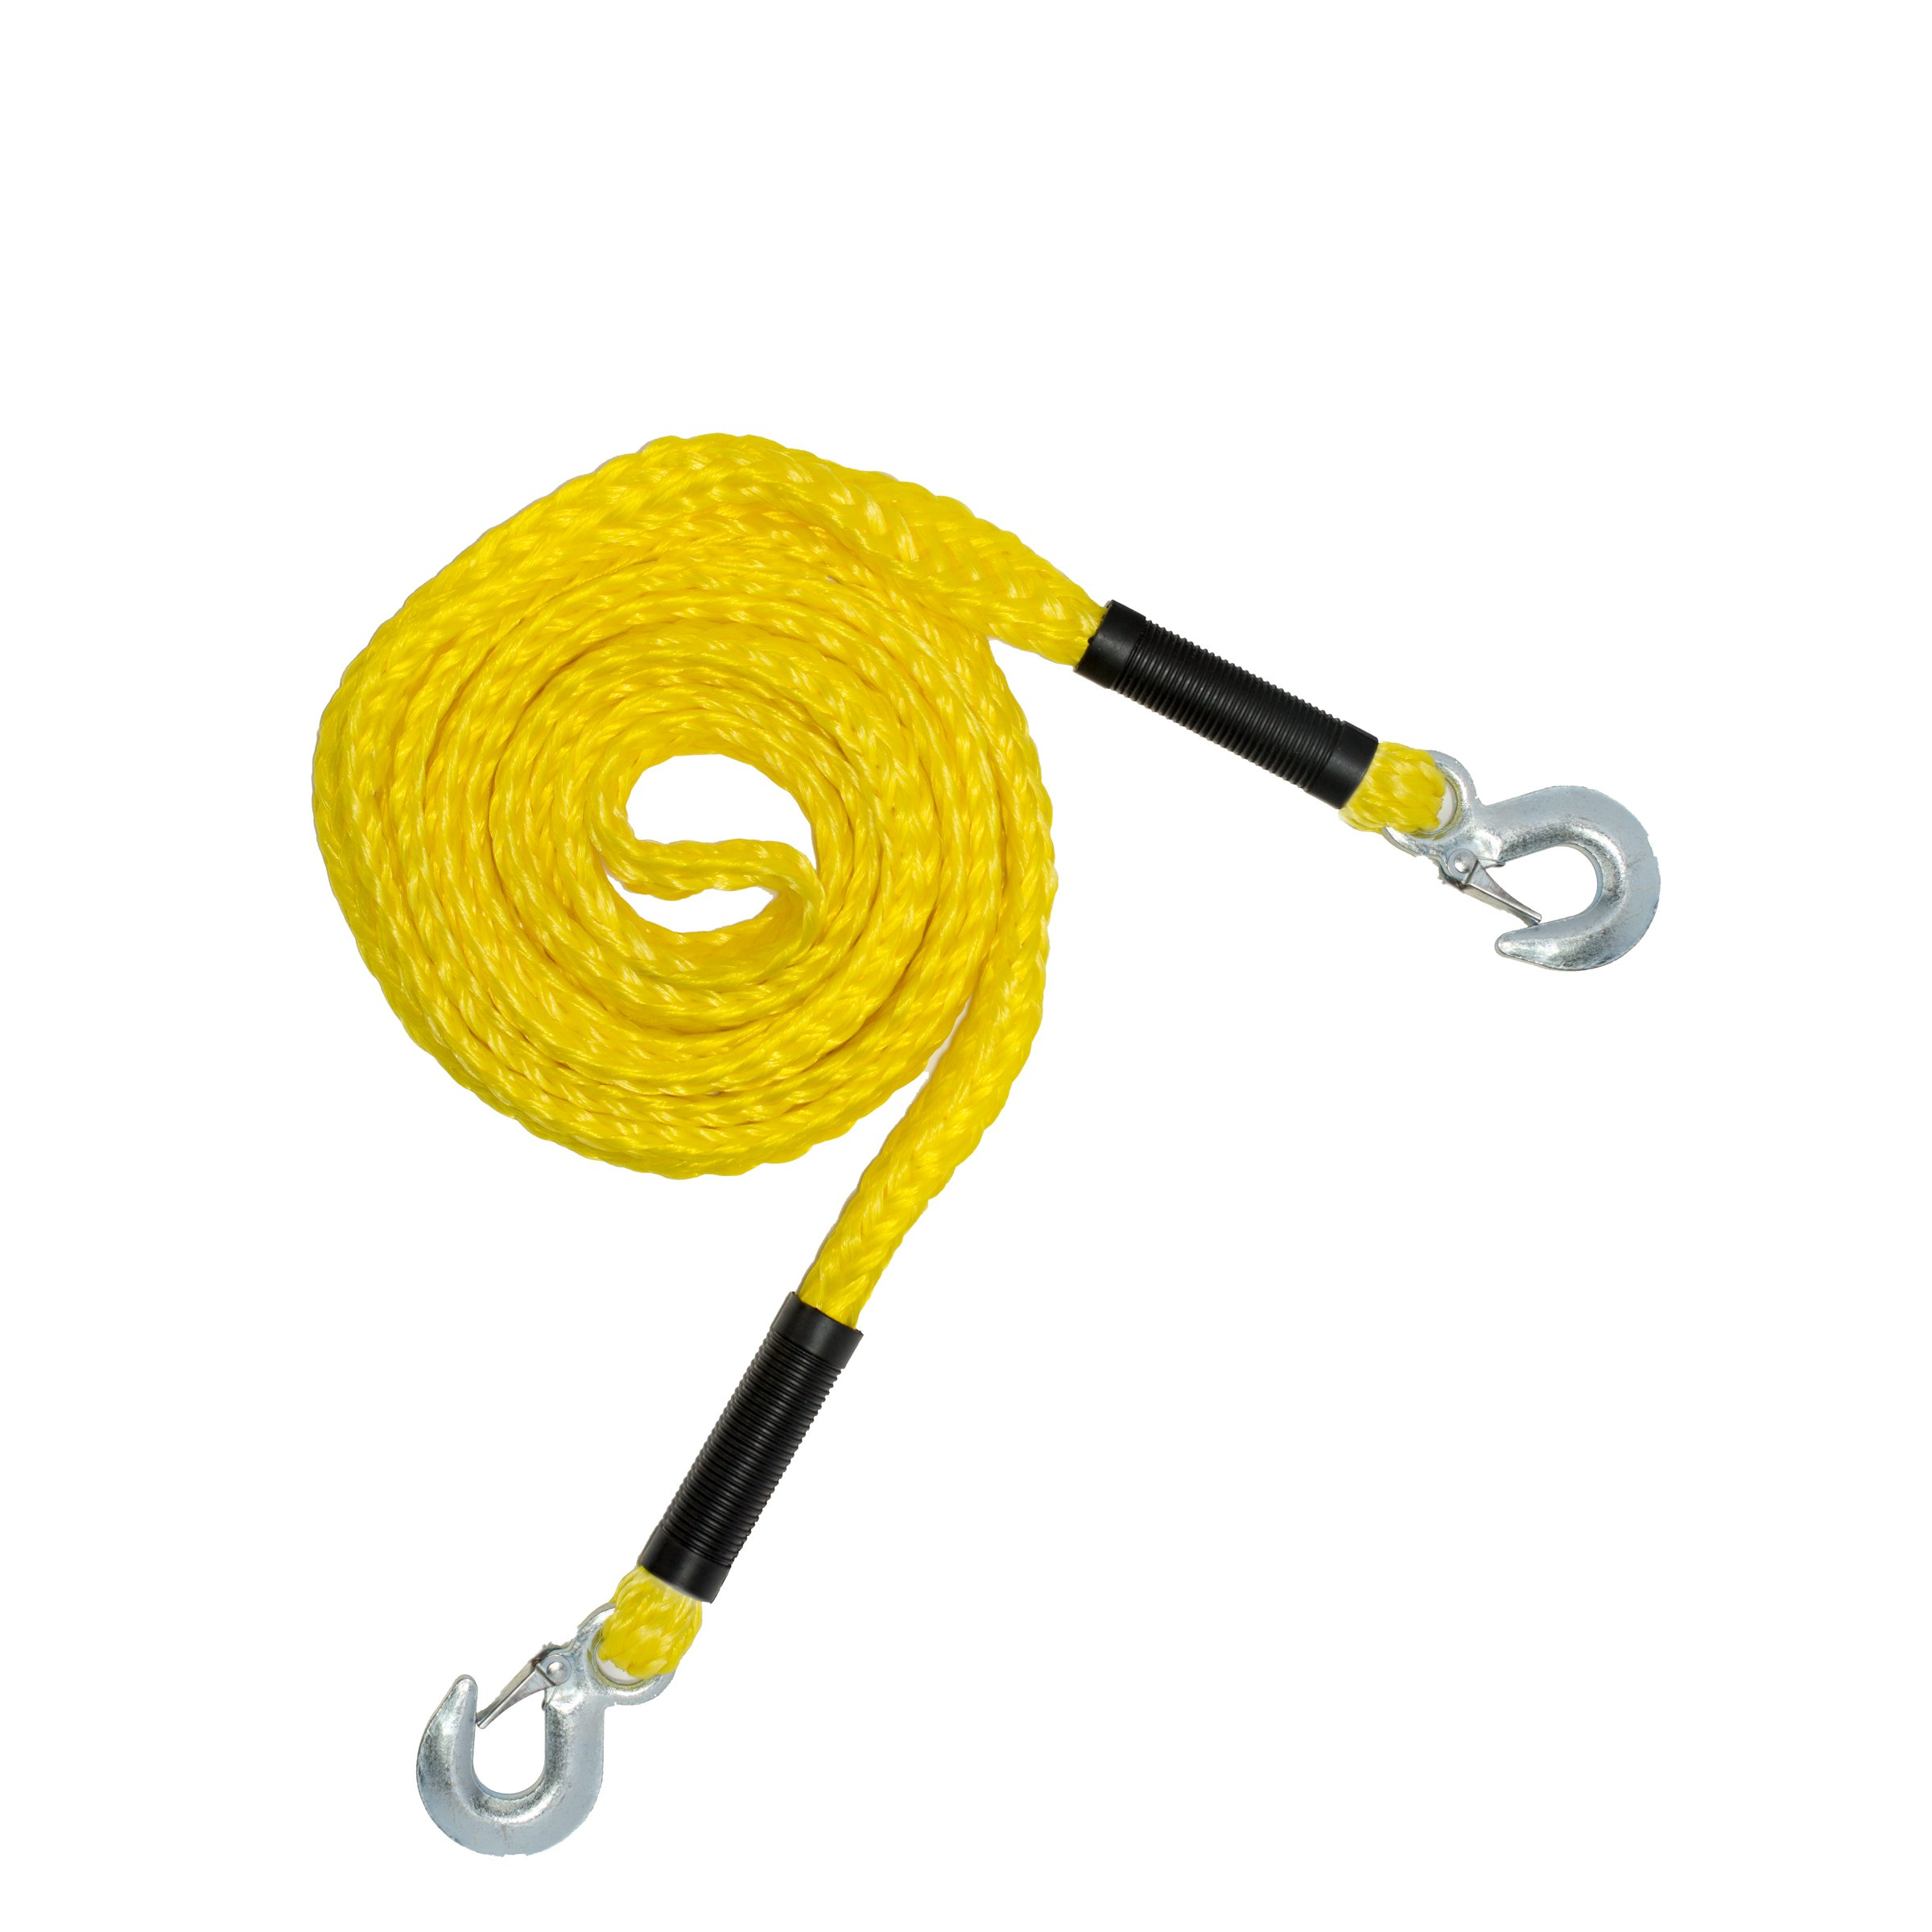 RPS Outdoors Yellow 14' SI-2034 Recovery Tow Rope (4,500 lb. Break Strength) with Safety Steel Forged Hooks (14 Ft. x 1.25 in.) by RPS Outdoors